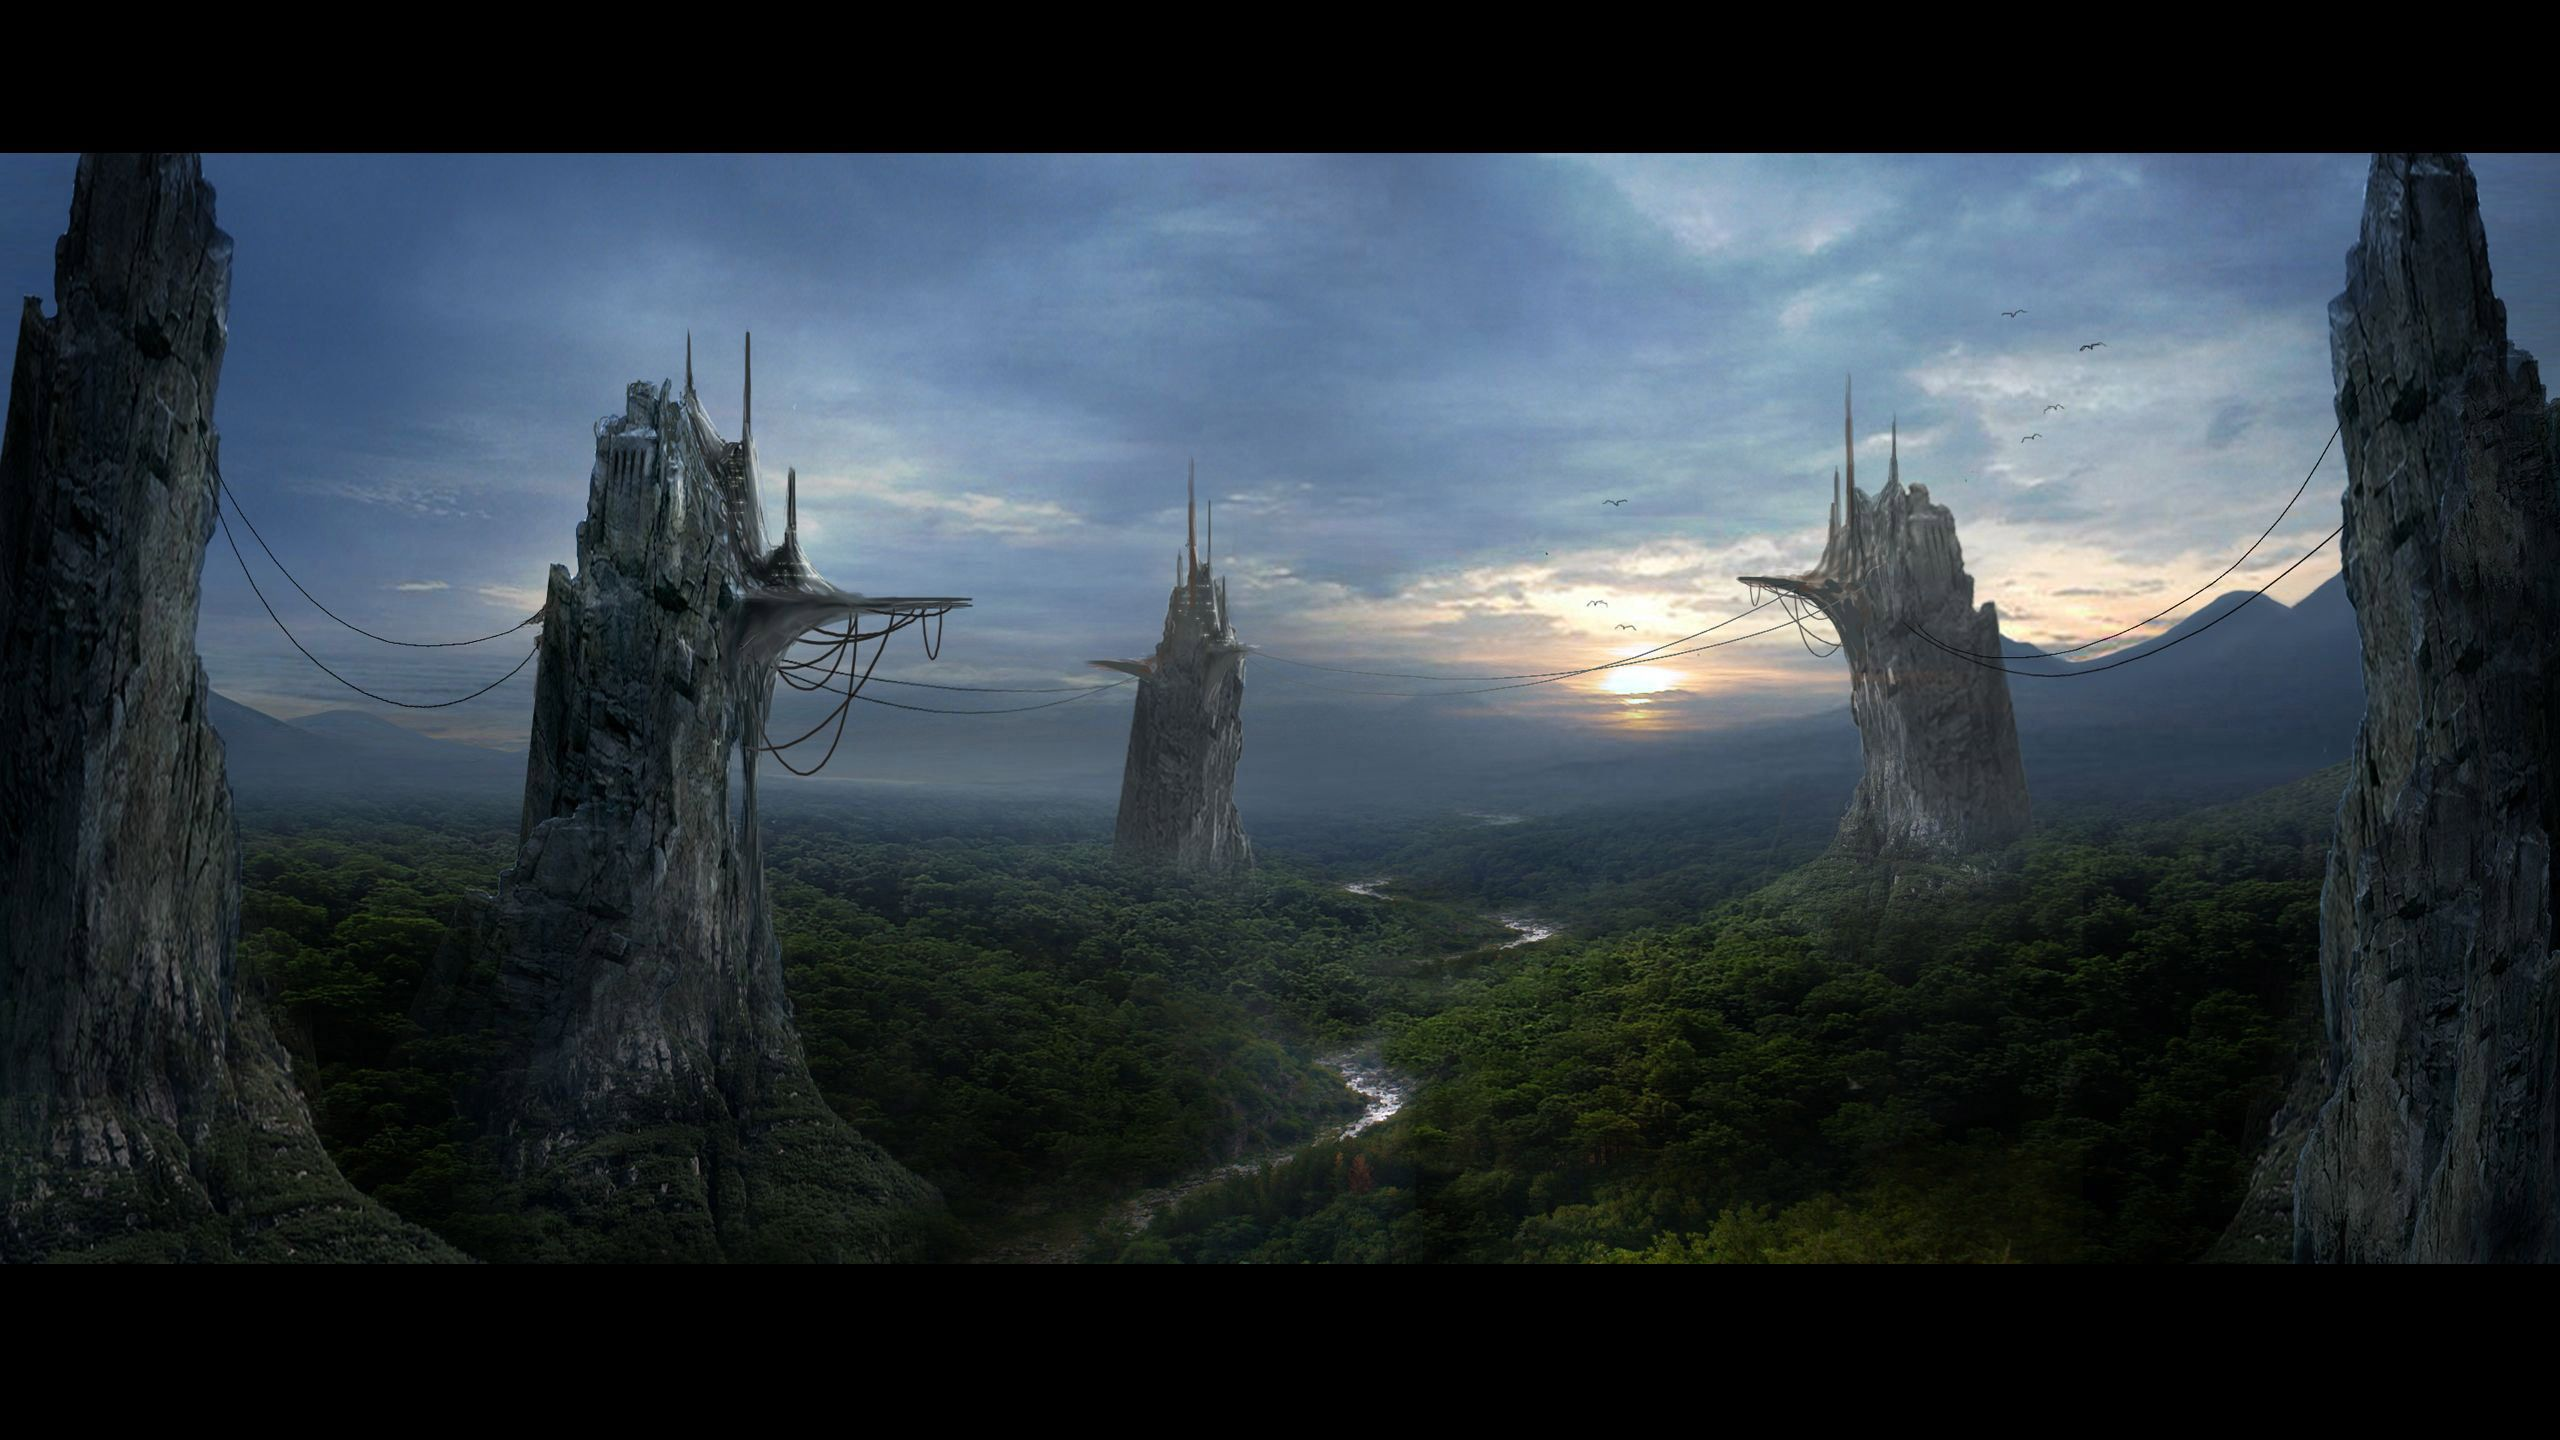 FANTASY JUNGLE CITY | Jungle River Mountain Peak City Sky Fantasy 2560x1440 hdw.eweb4.com